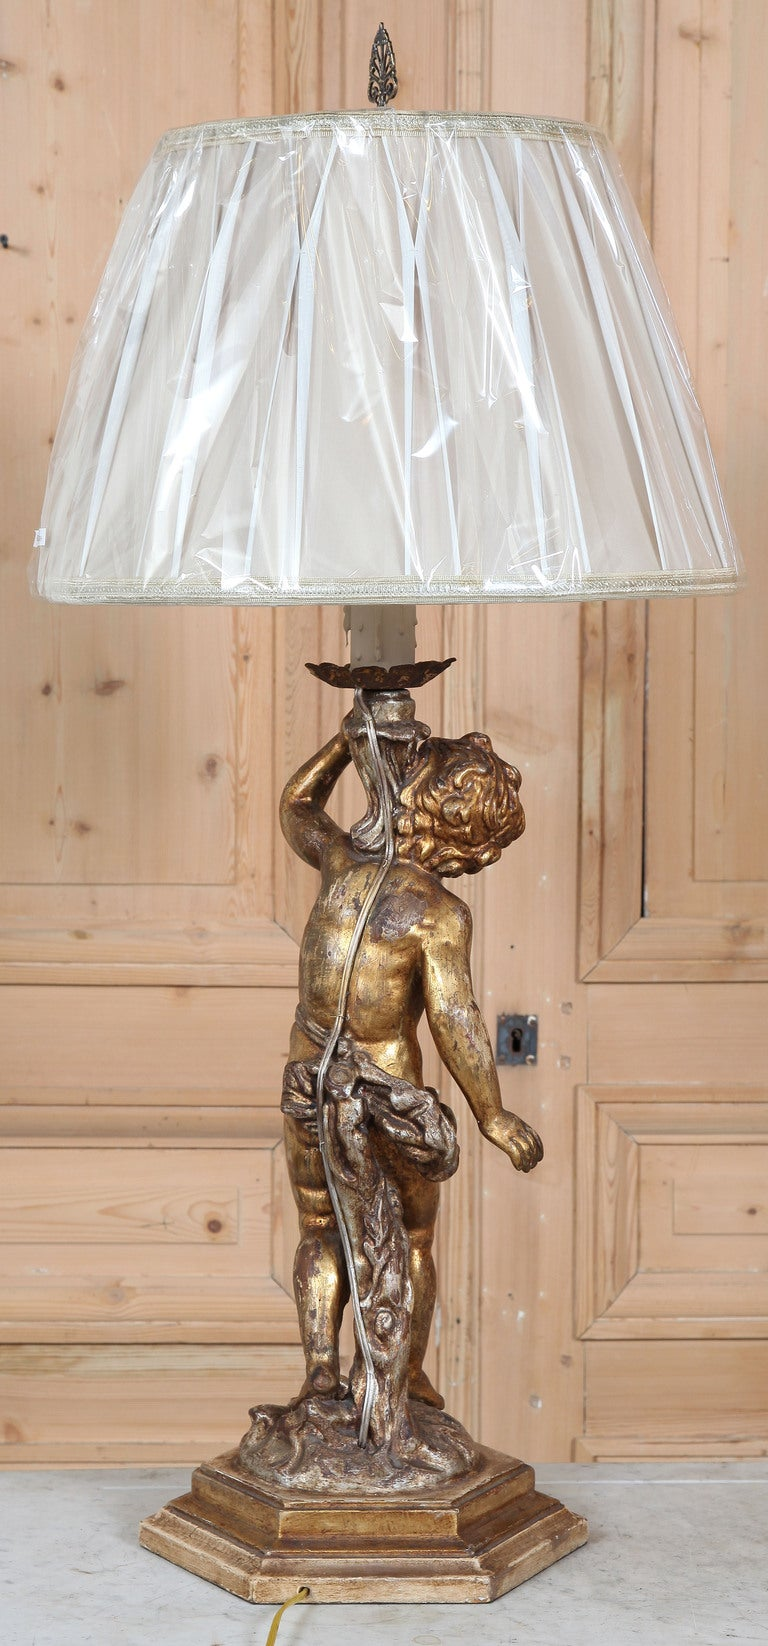 Antique Lamp Vintage Table Co : Antique polychrome cherub table lamp at stdibs